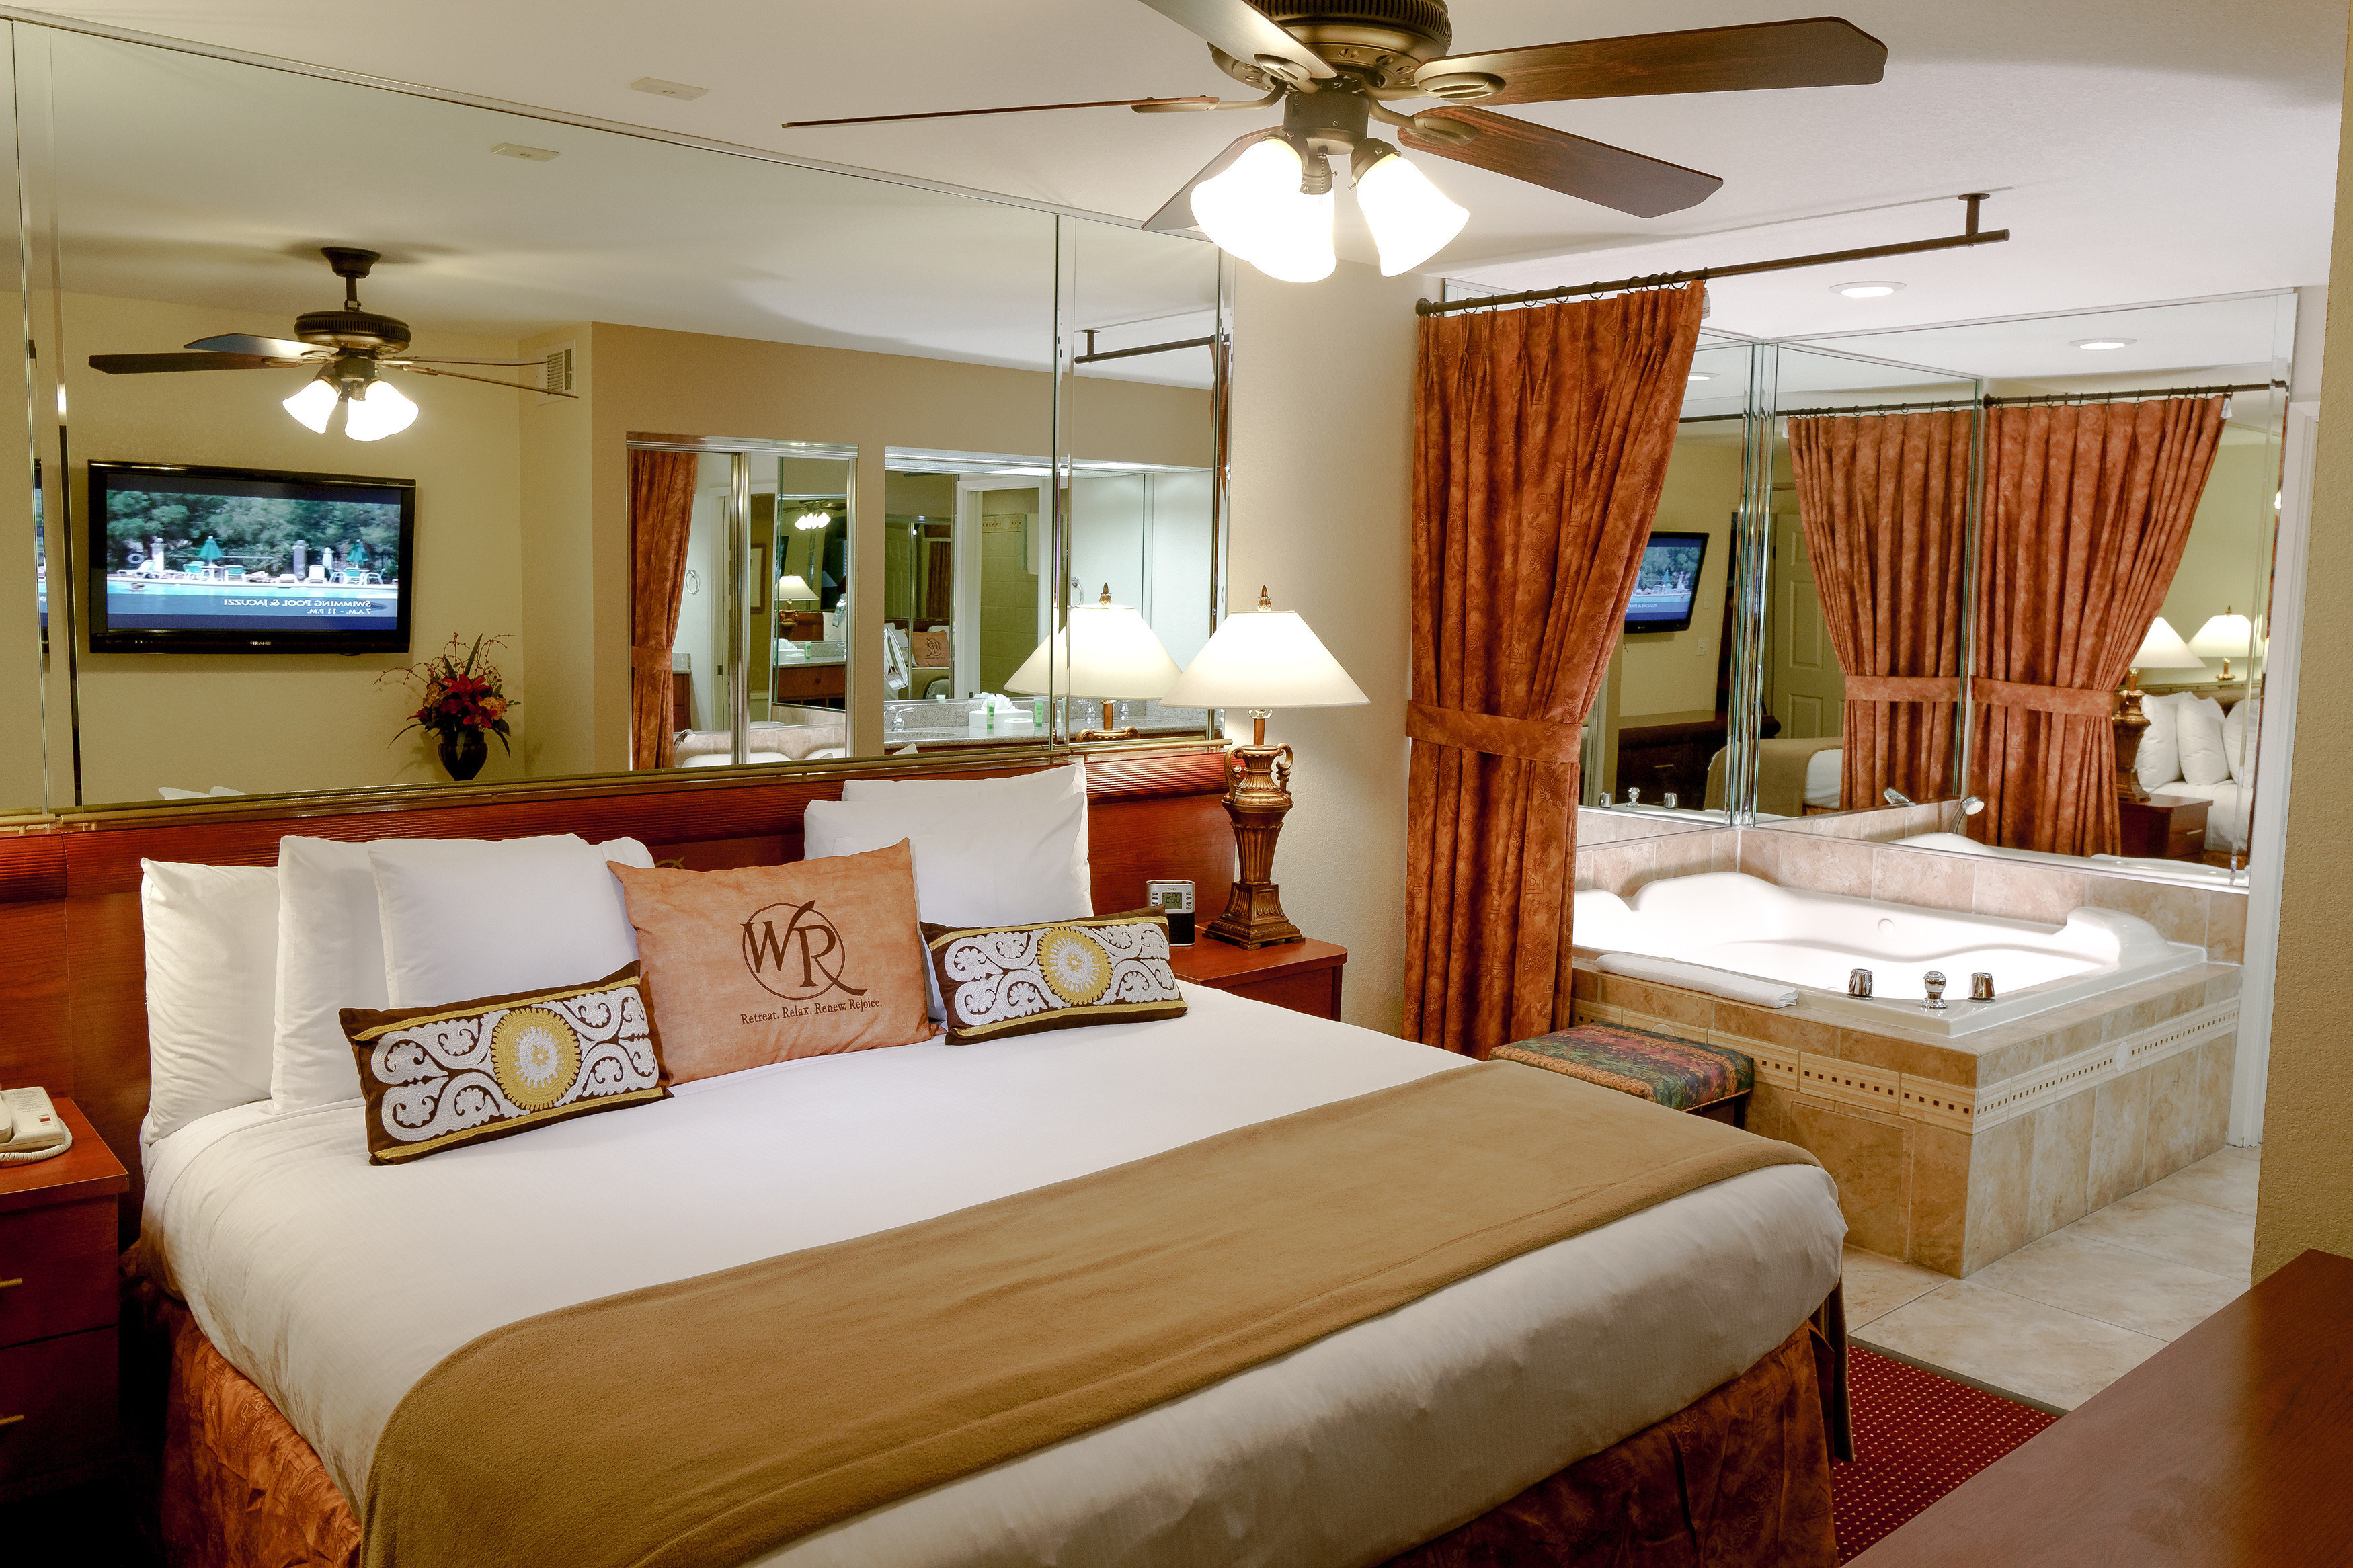 After a fun-filled day exploring the world-famous Las Vegas Strip, escape to the brilliantly adorned Two-Bedroom Villa at Westgate Flamingo Bay Resort, which offers remarkable spaciousness.